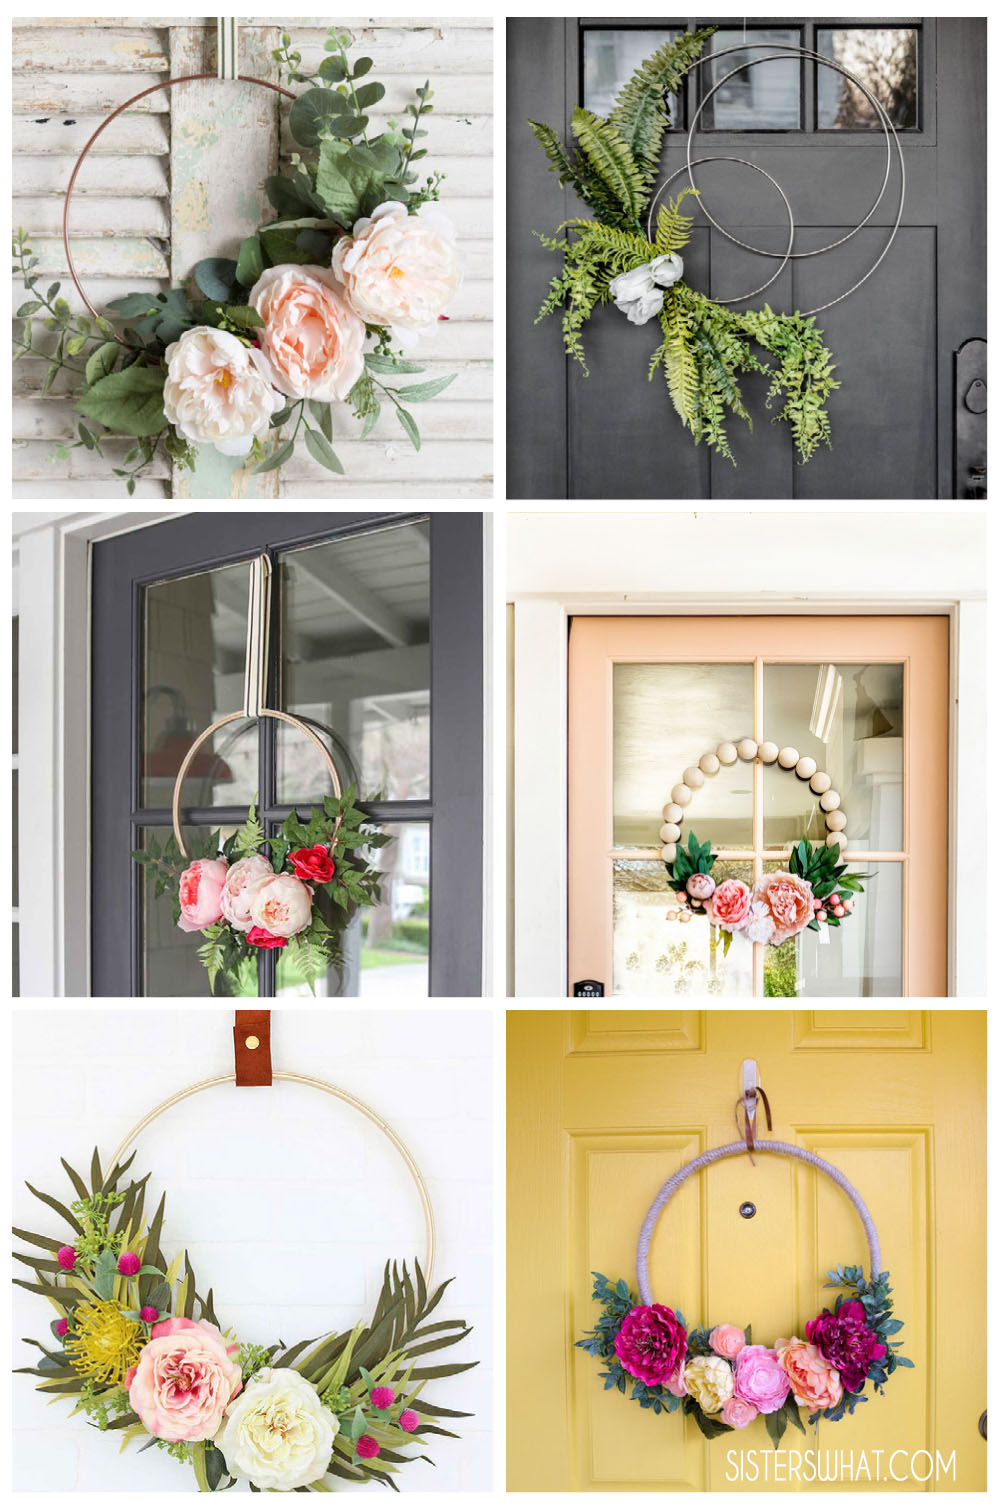 how to make a flower wreath for front door